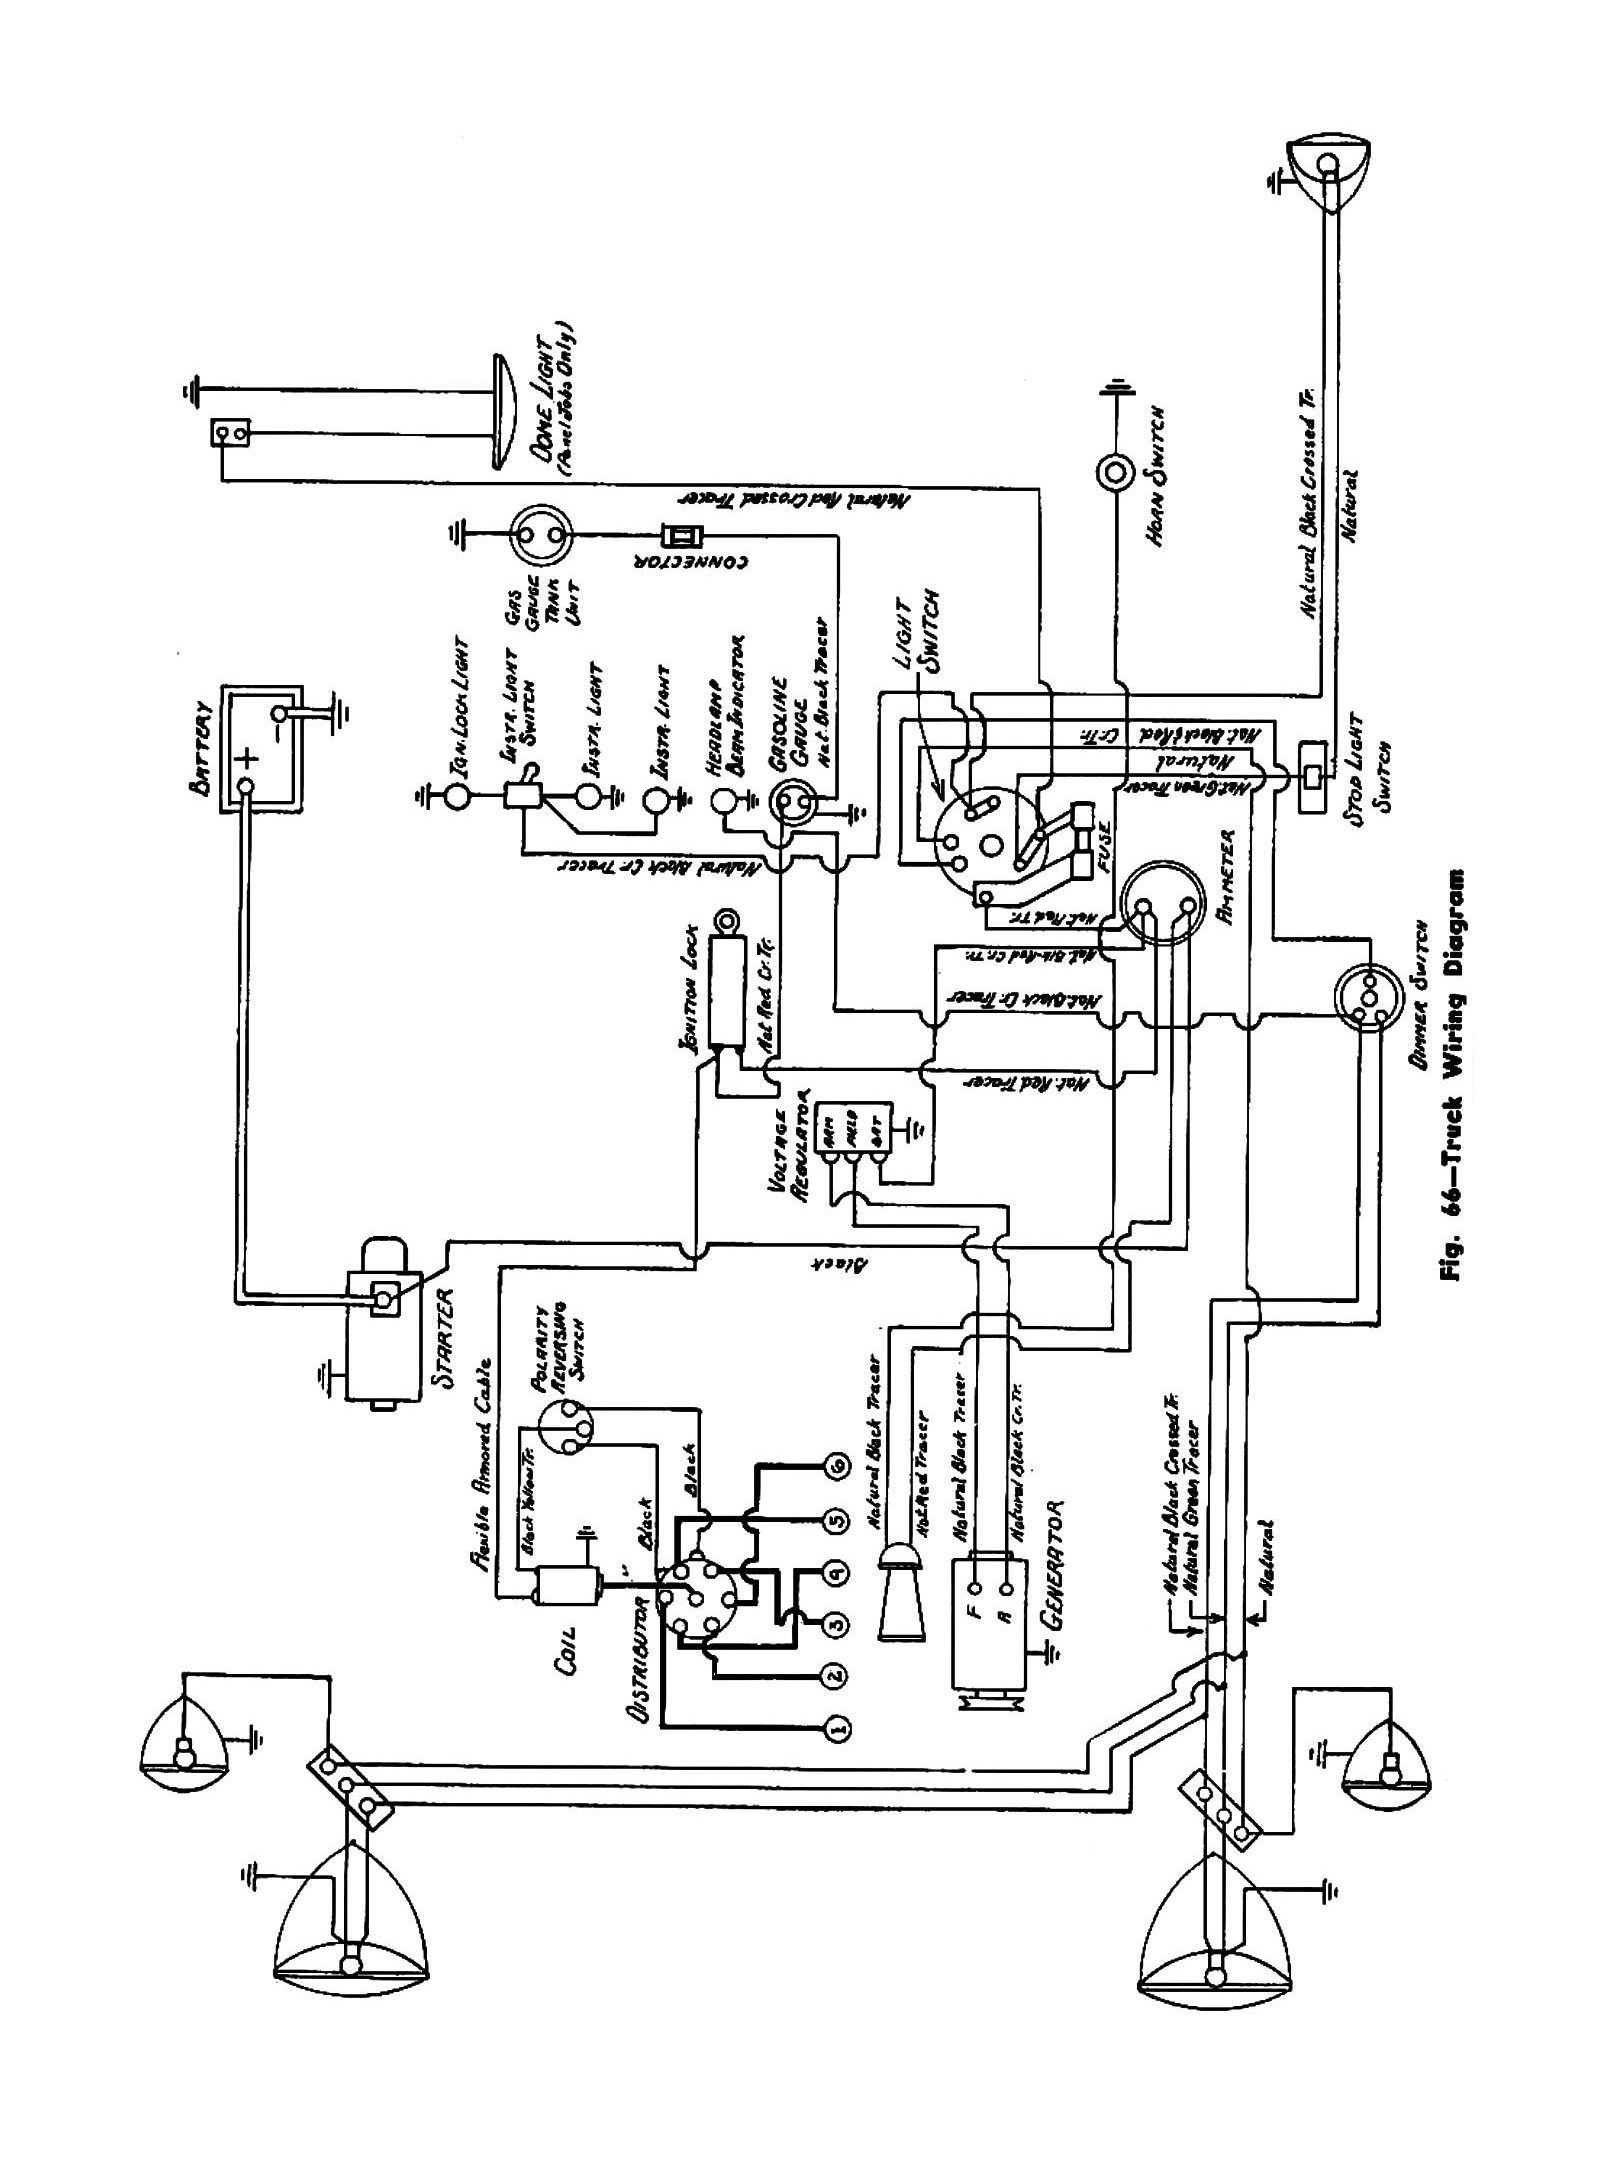 hight resolution of 57 chevy horn diagram nice place to get wiring diagram u2022 57 chevy ignition wiring diagram 57 chevy wiring diagram